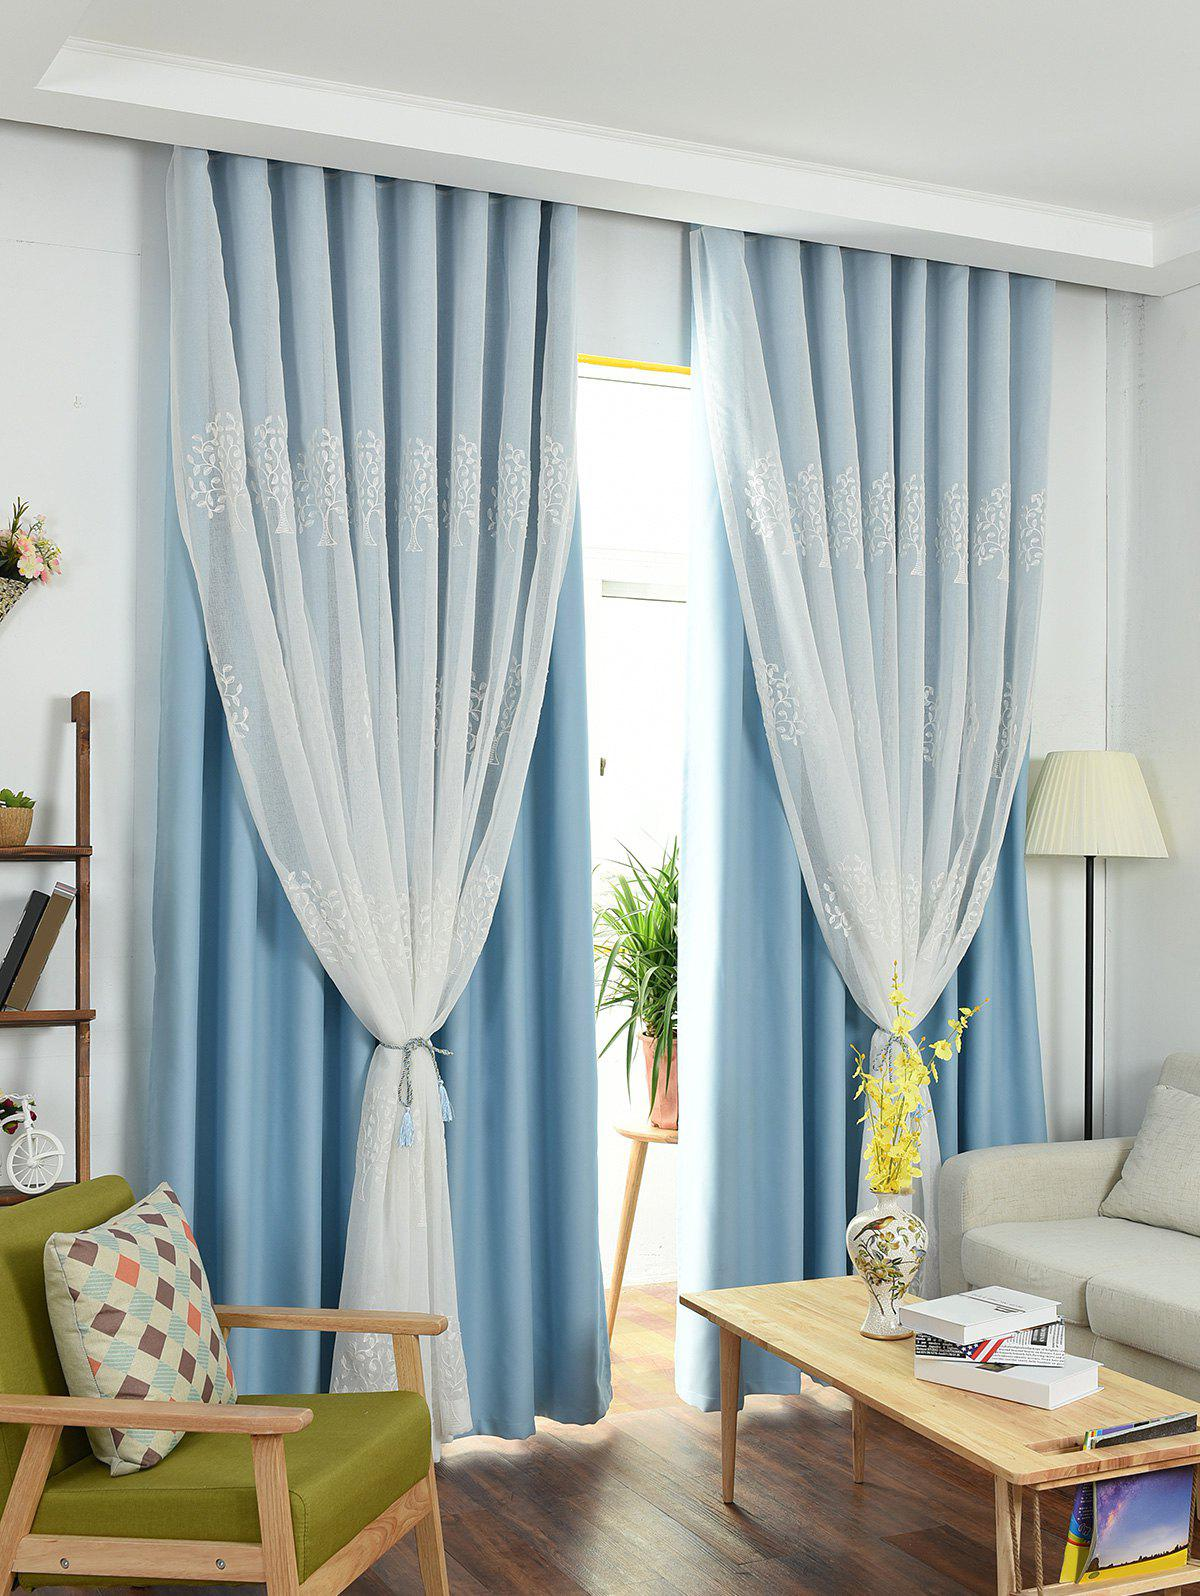 Window Screen 1Pcs 2 Layers Princess CurtainHOME<br><br>Size: W54 INCH * L84 INCH; Color: ICE BLUE; Applicable Window Type: French Window; Function: Decoration + Full Light Shading; Installation Type: Ceiling Installation; Location: Window; Material: Polyester / Cotton; Opening and Closing Method: Left and Right Biparting Open; Pattern Type: Floral,Solid; Processing: Punching; Processing Accessories Cost: Excluded; Style: European and American Style; Type: Curtain; Use: Cafe,Home,Hotel,Office; Weight: 1.2600kg; Package Contents: 1 x Double Layers Window Curtain;